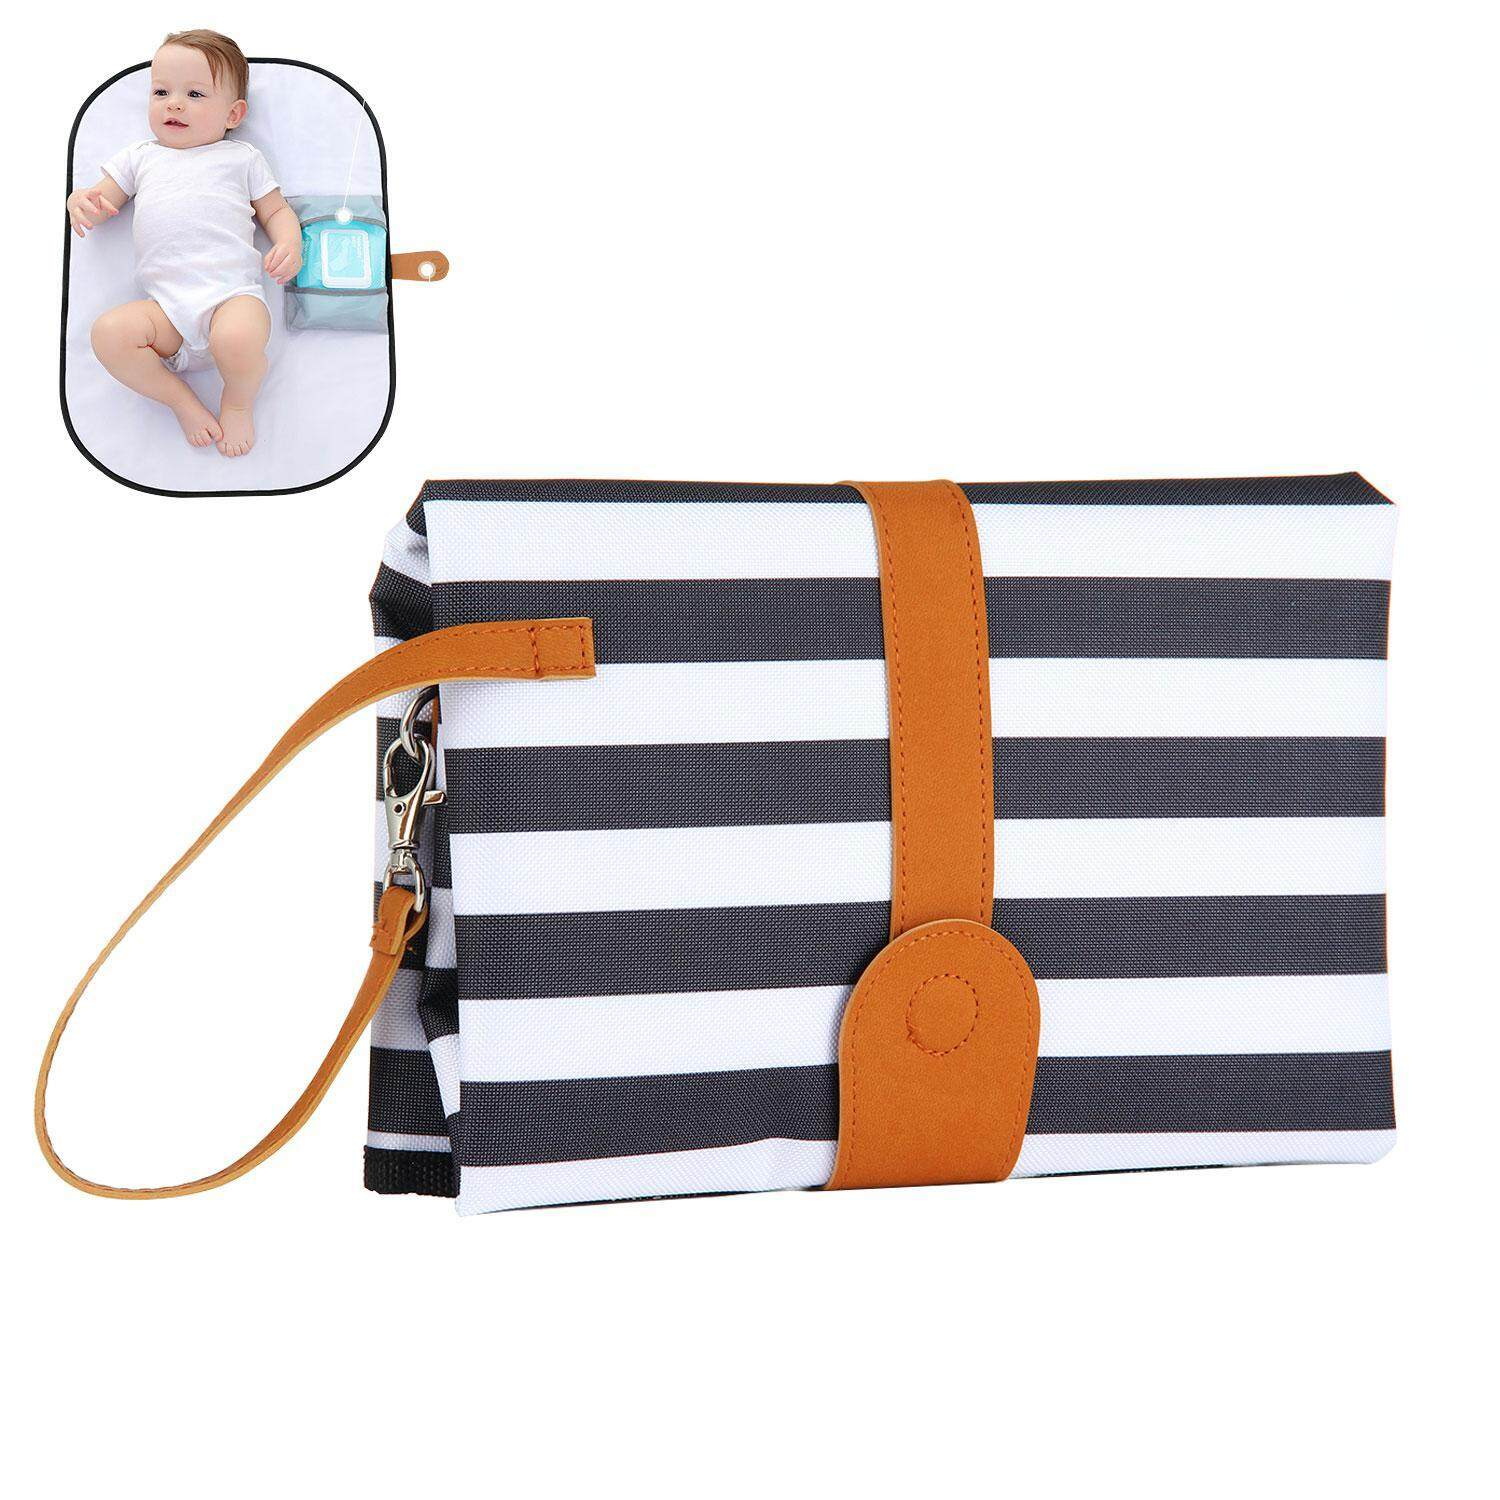 Aolvo Portable Changing Pad & Diaper Changing Station 2-In-1 Detachable Mat & Compact Bag The Stylish Diaper Clutch For Modern Moms - Intl By Aolvo.